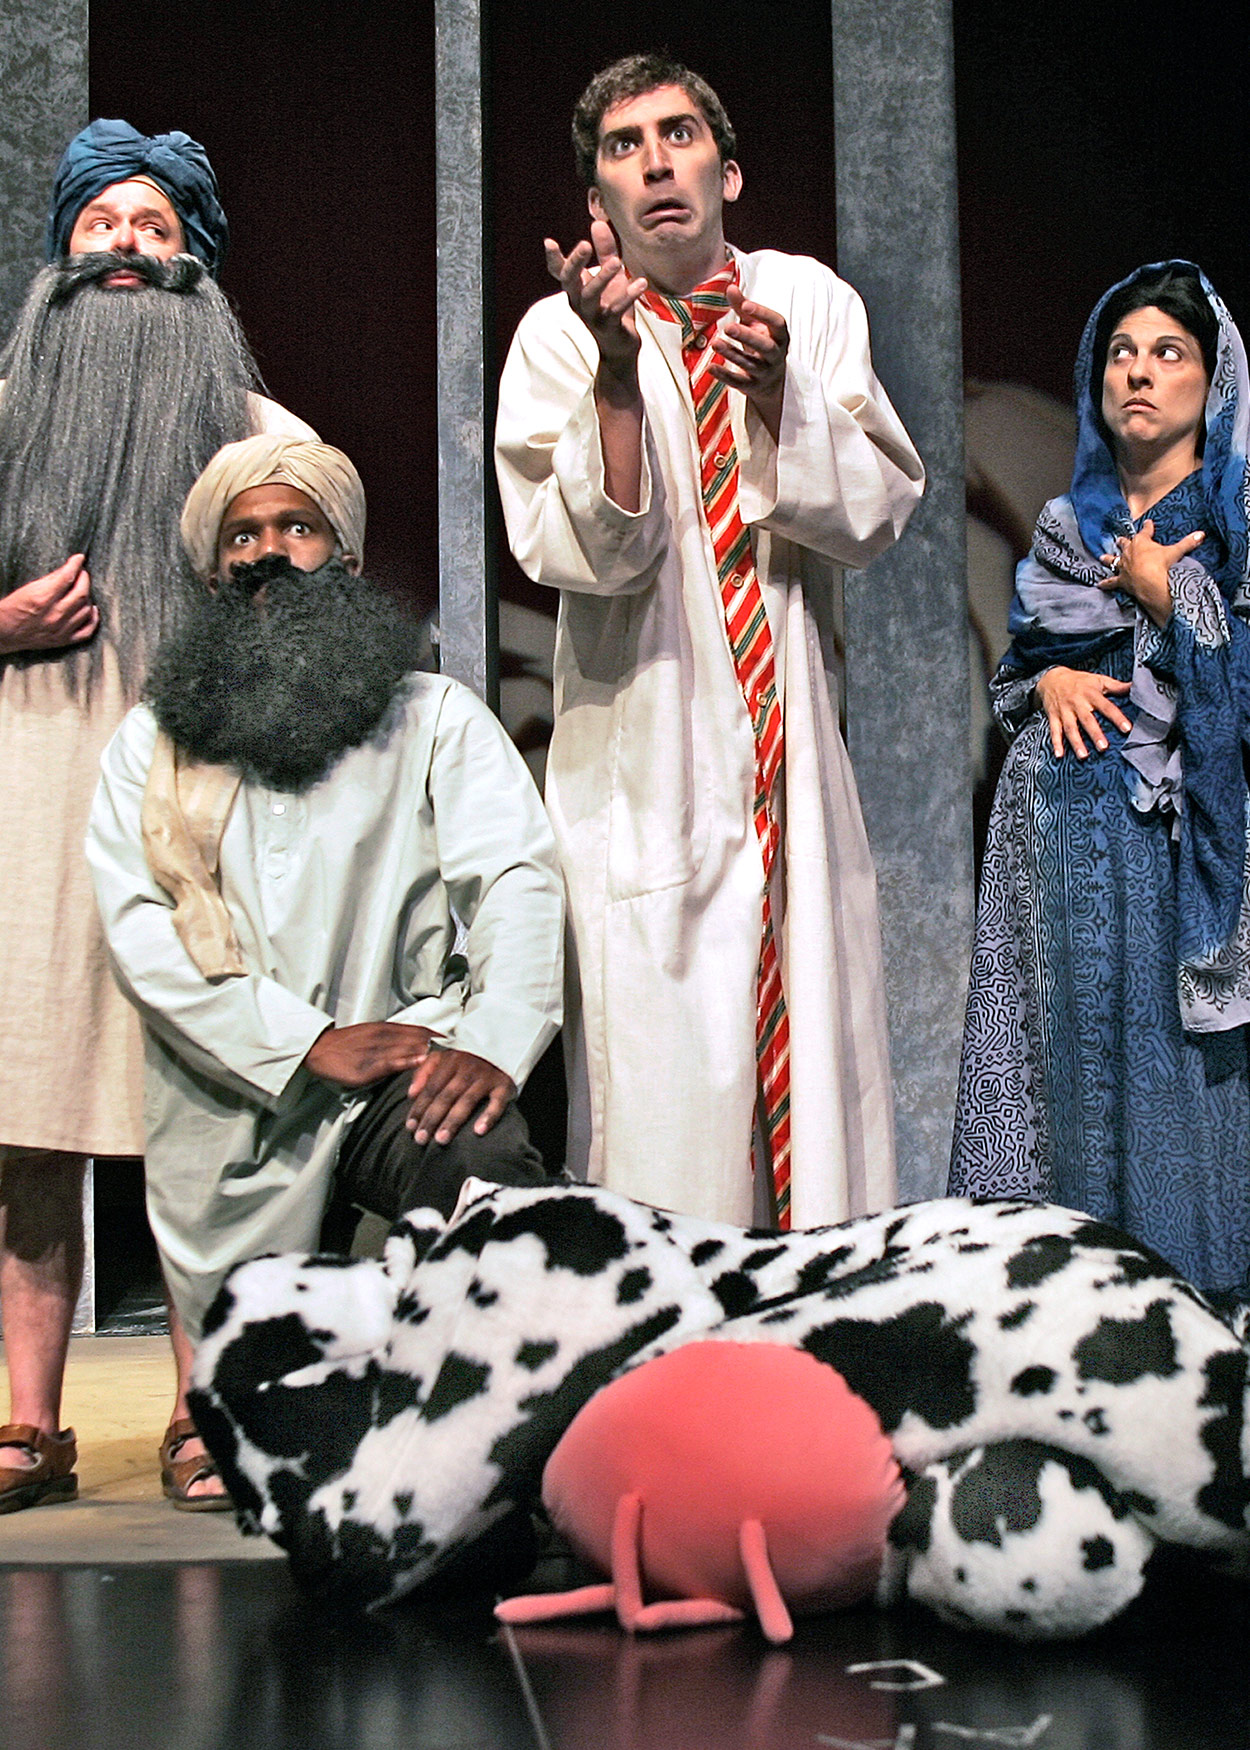 Four shocked actors in Eygtipian costumes standing over an actor in a cow costume laying on the ground